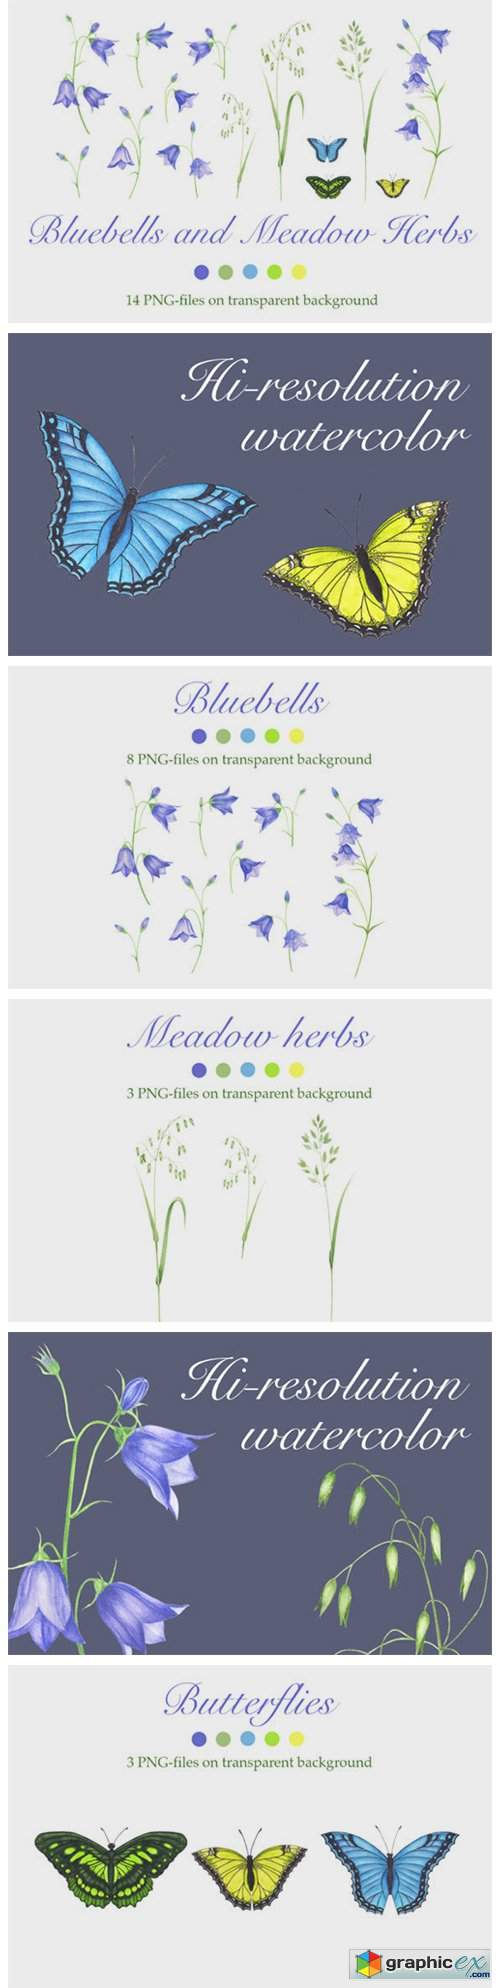 Bluebells and Meadow Herbs